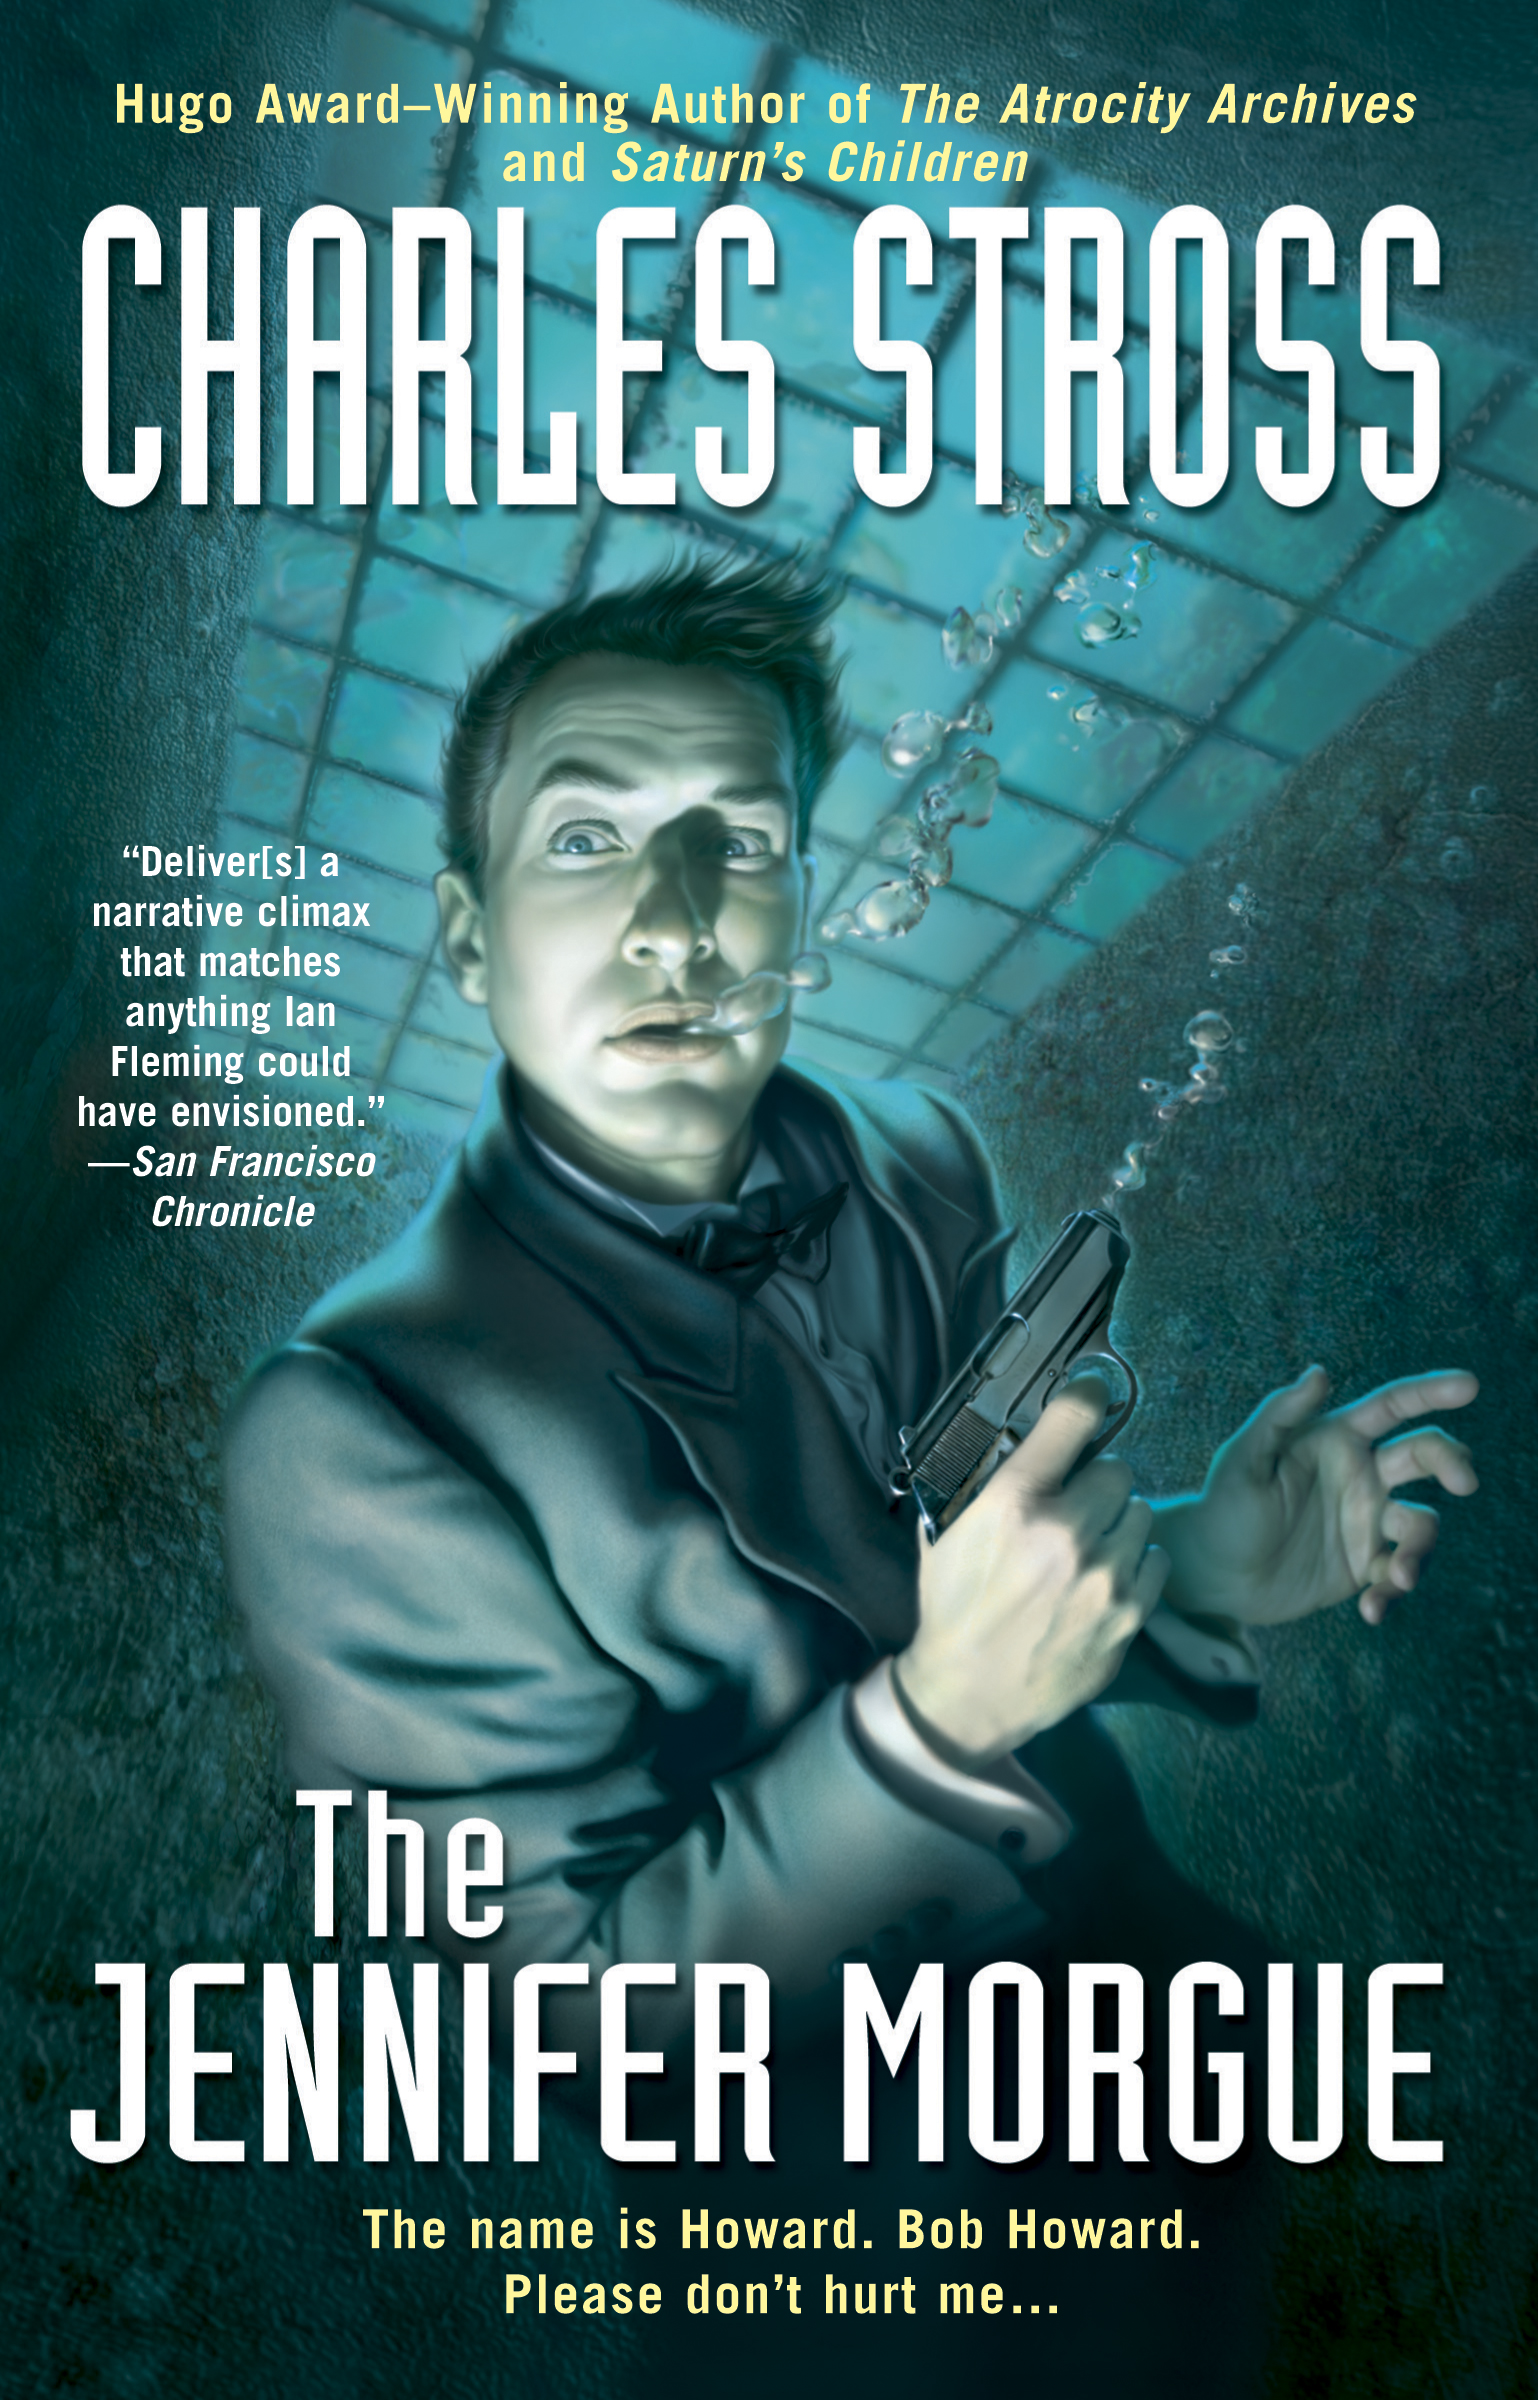 Bob, the main character of the novel, is suspended in a watery cage while wearing a business suit.